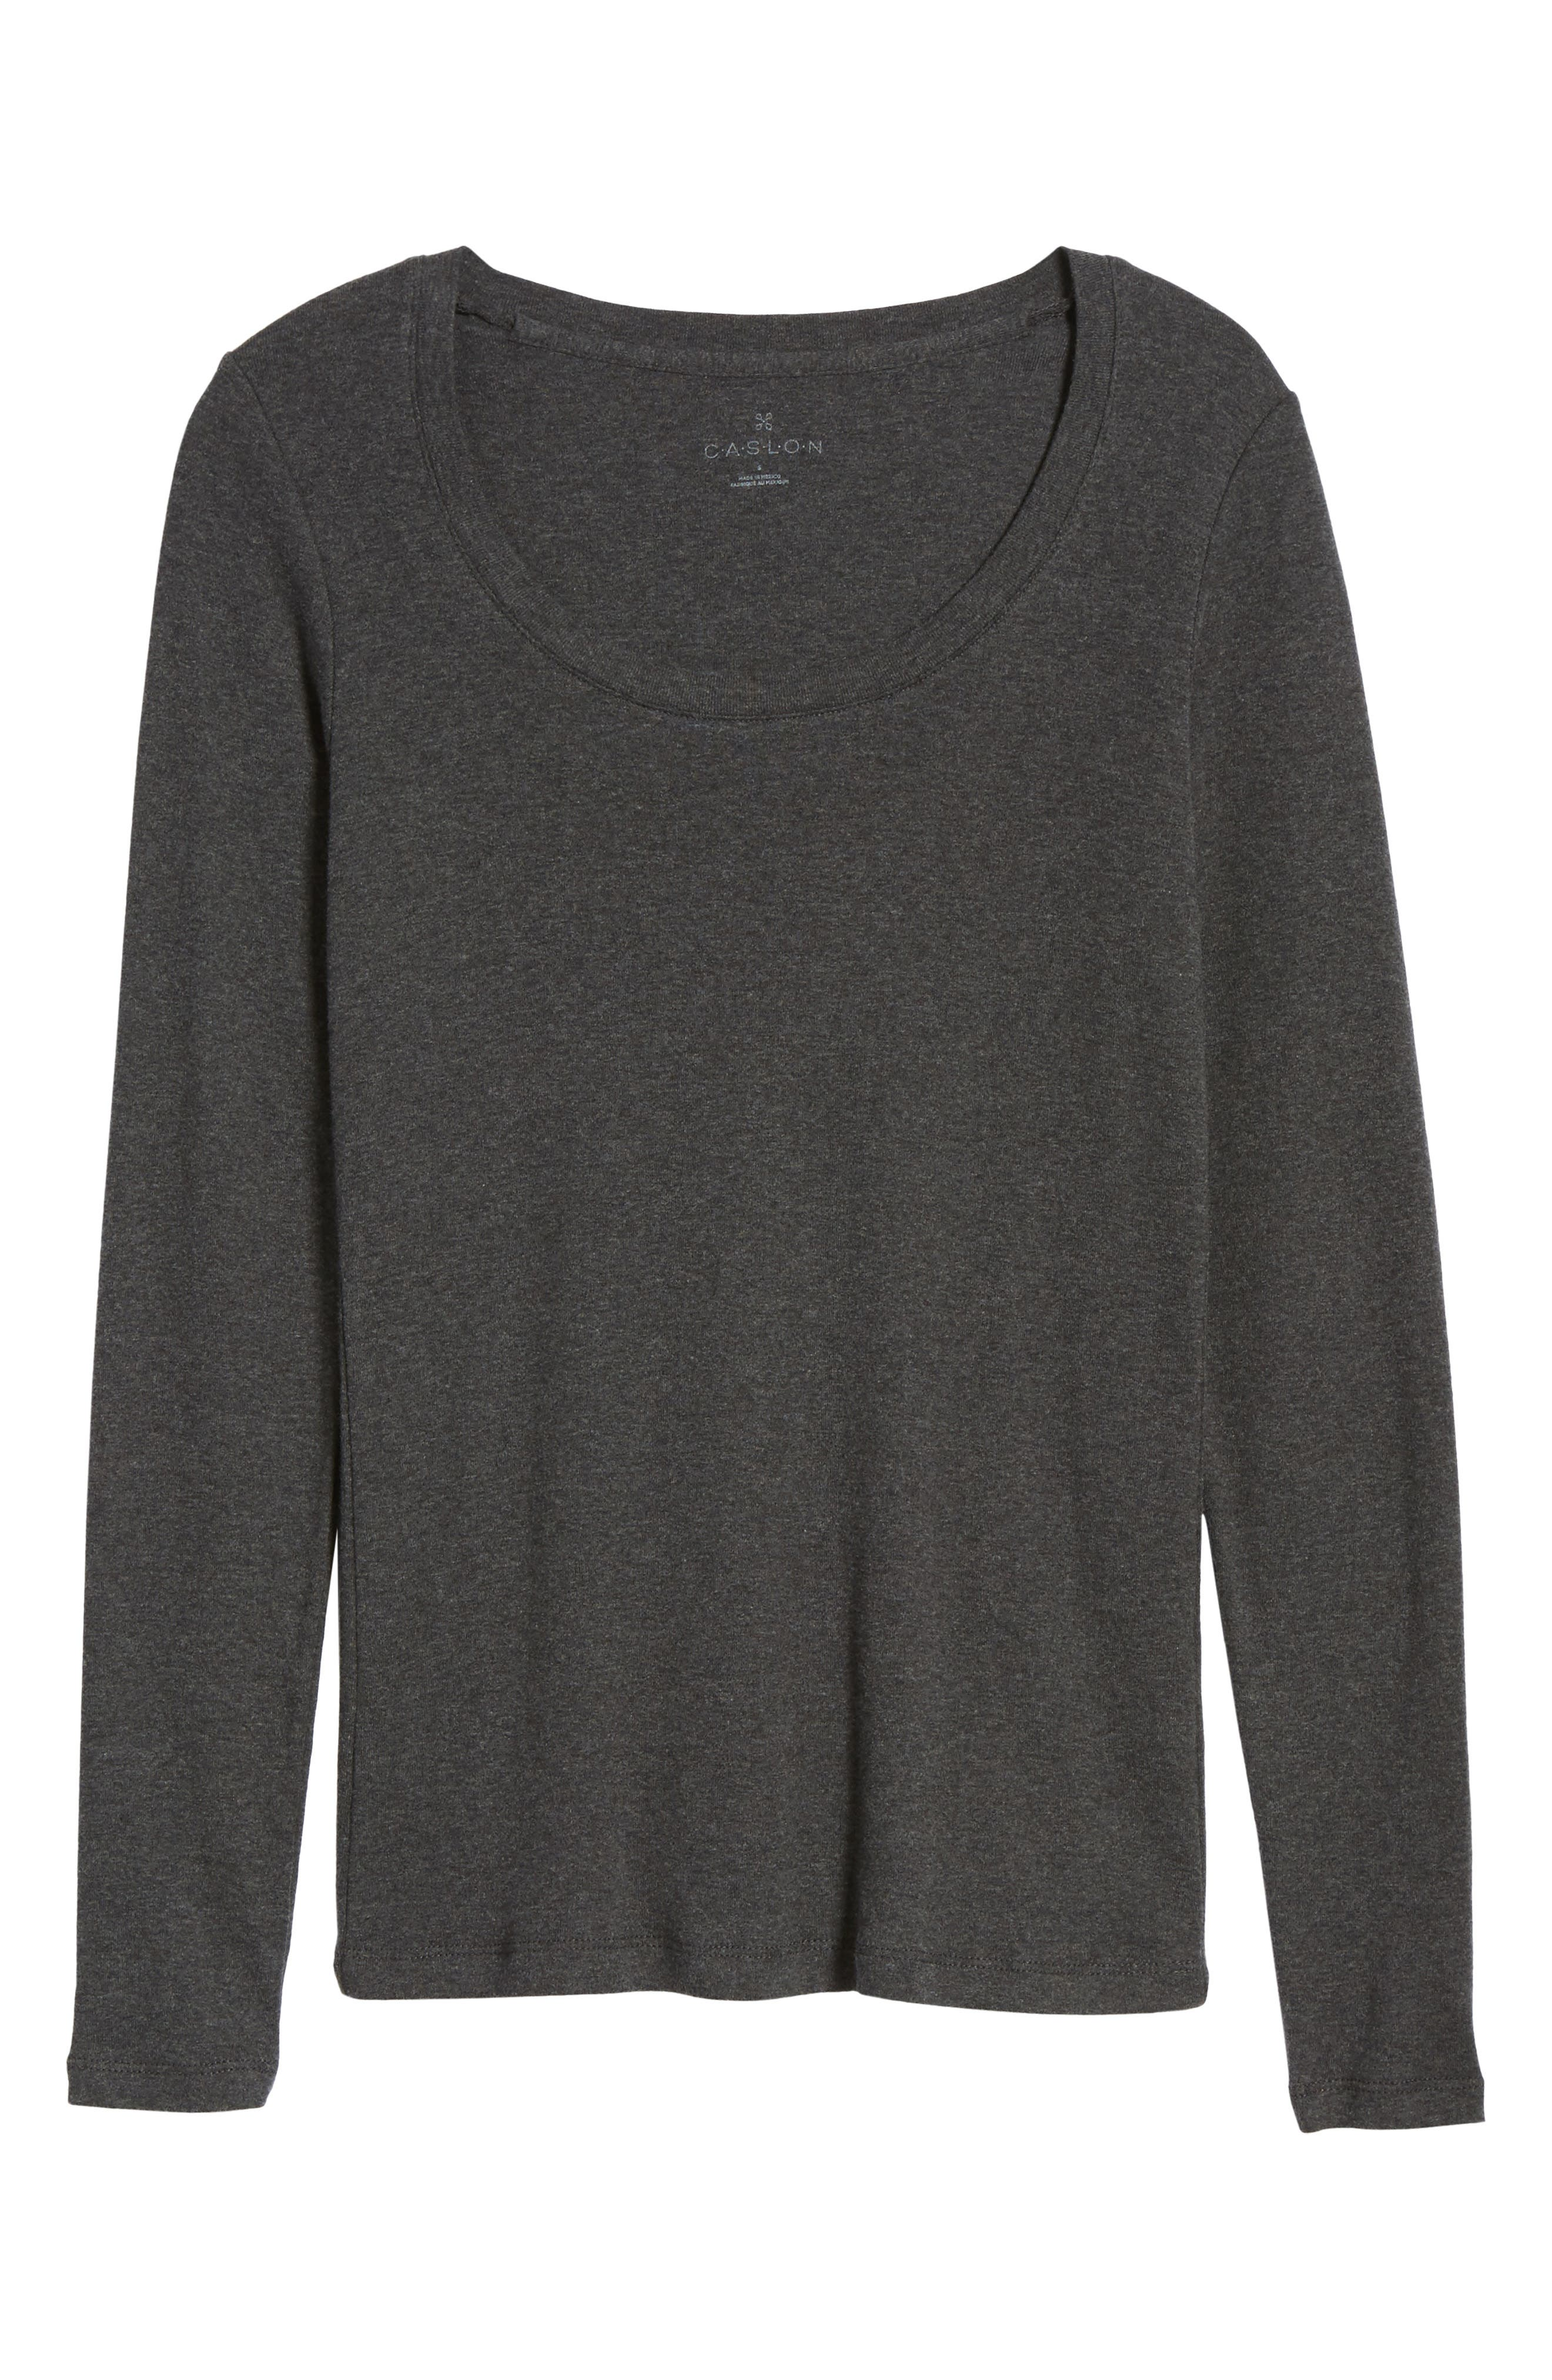 CASLON<SUP>®</SUP>,                             'Melody' Long Sleeve Scoop Neck Tee,                             Alternate thumbnail 6, color,                             HEATHER CHARCOAL